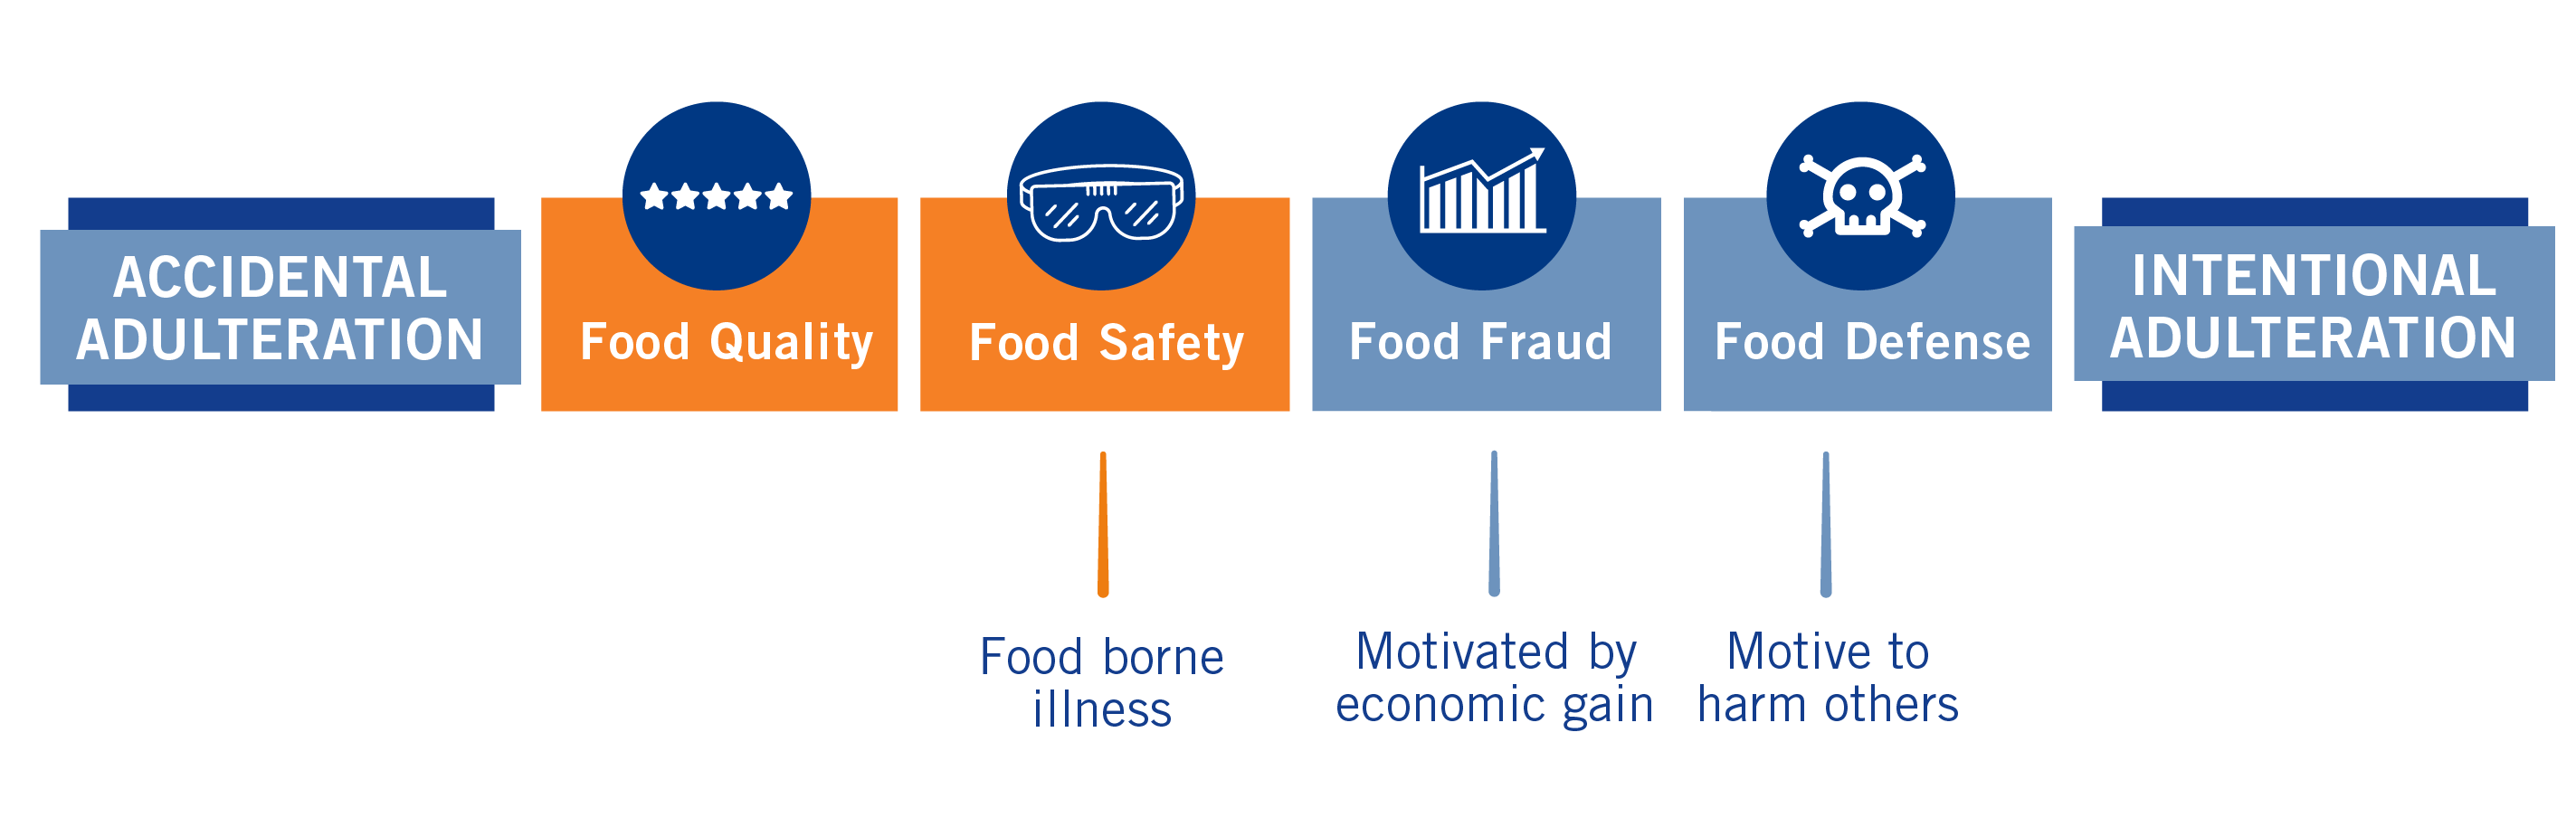 Food Fraud vs Food Defense